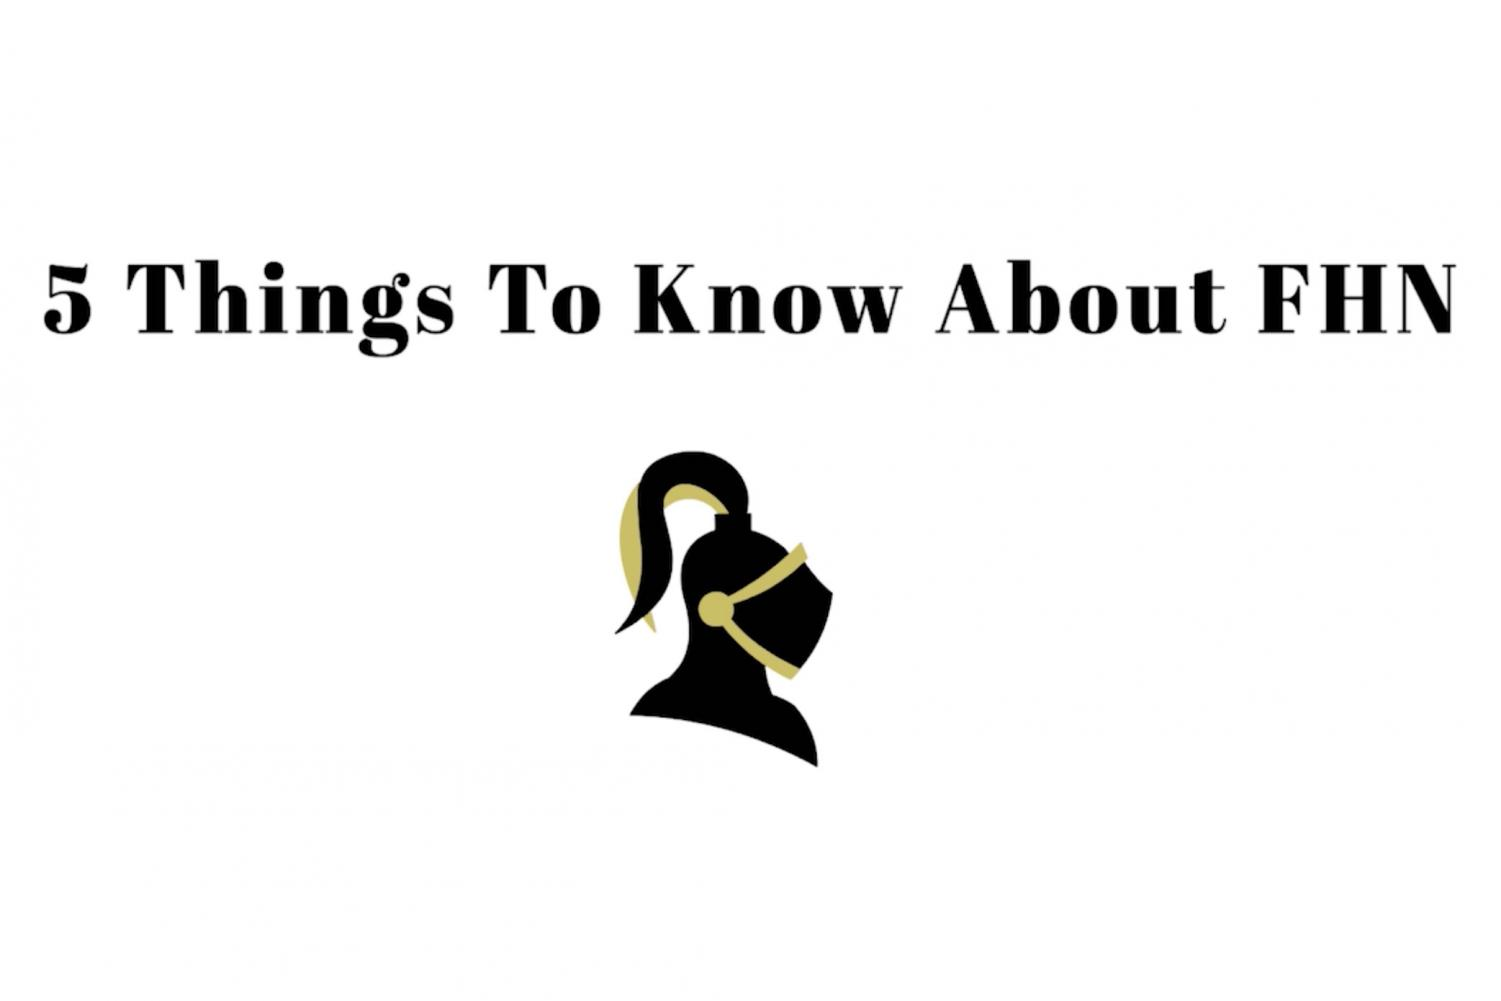 5 Things to Know About FHN